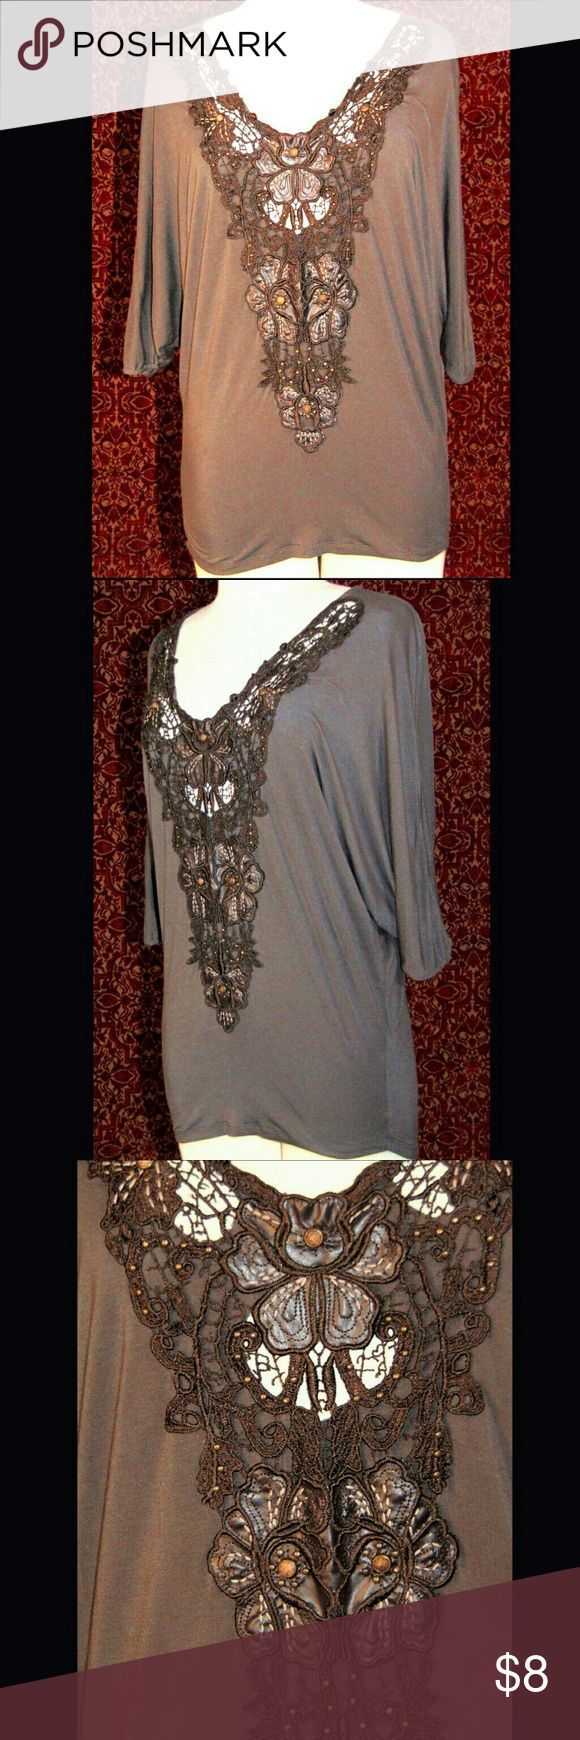 SOUL REVIVAL batwing blouse Excellent condition, fabric is thing, soft and is very stretchy (Viscose).  Fabric is just a little fuzzy - normal for this type of fabric.  Embellished lace front with faux leather details, metal studs and encased faux stones.  Batwing short sleeves. Tops Blouses